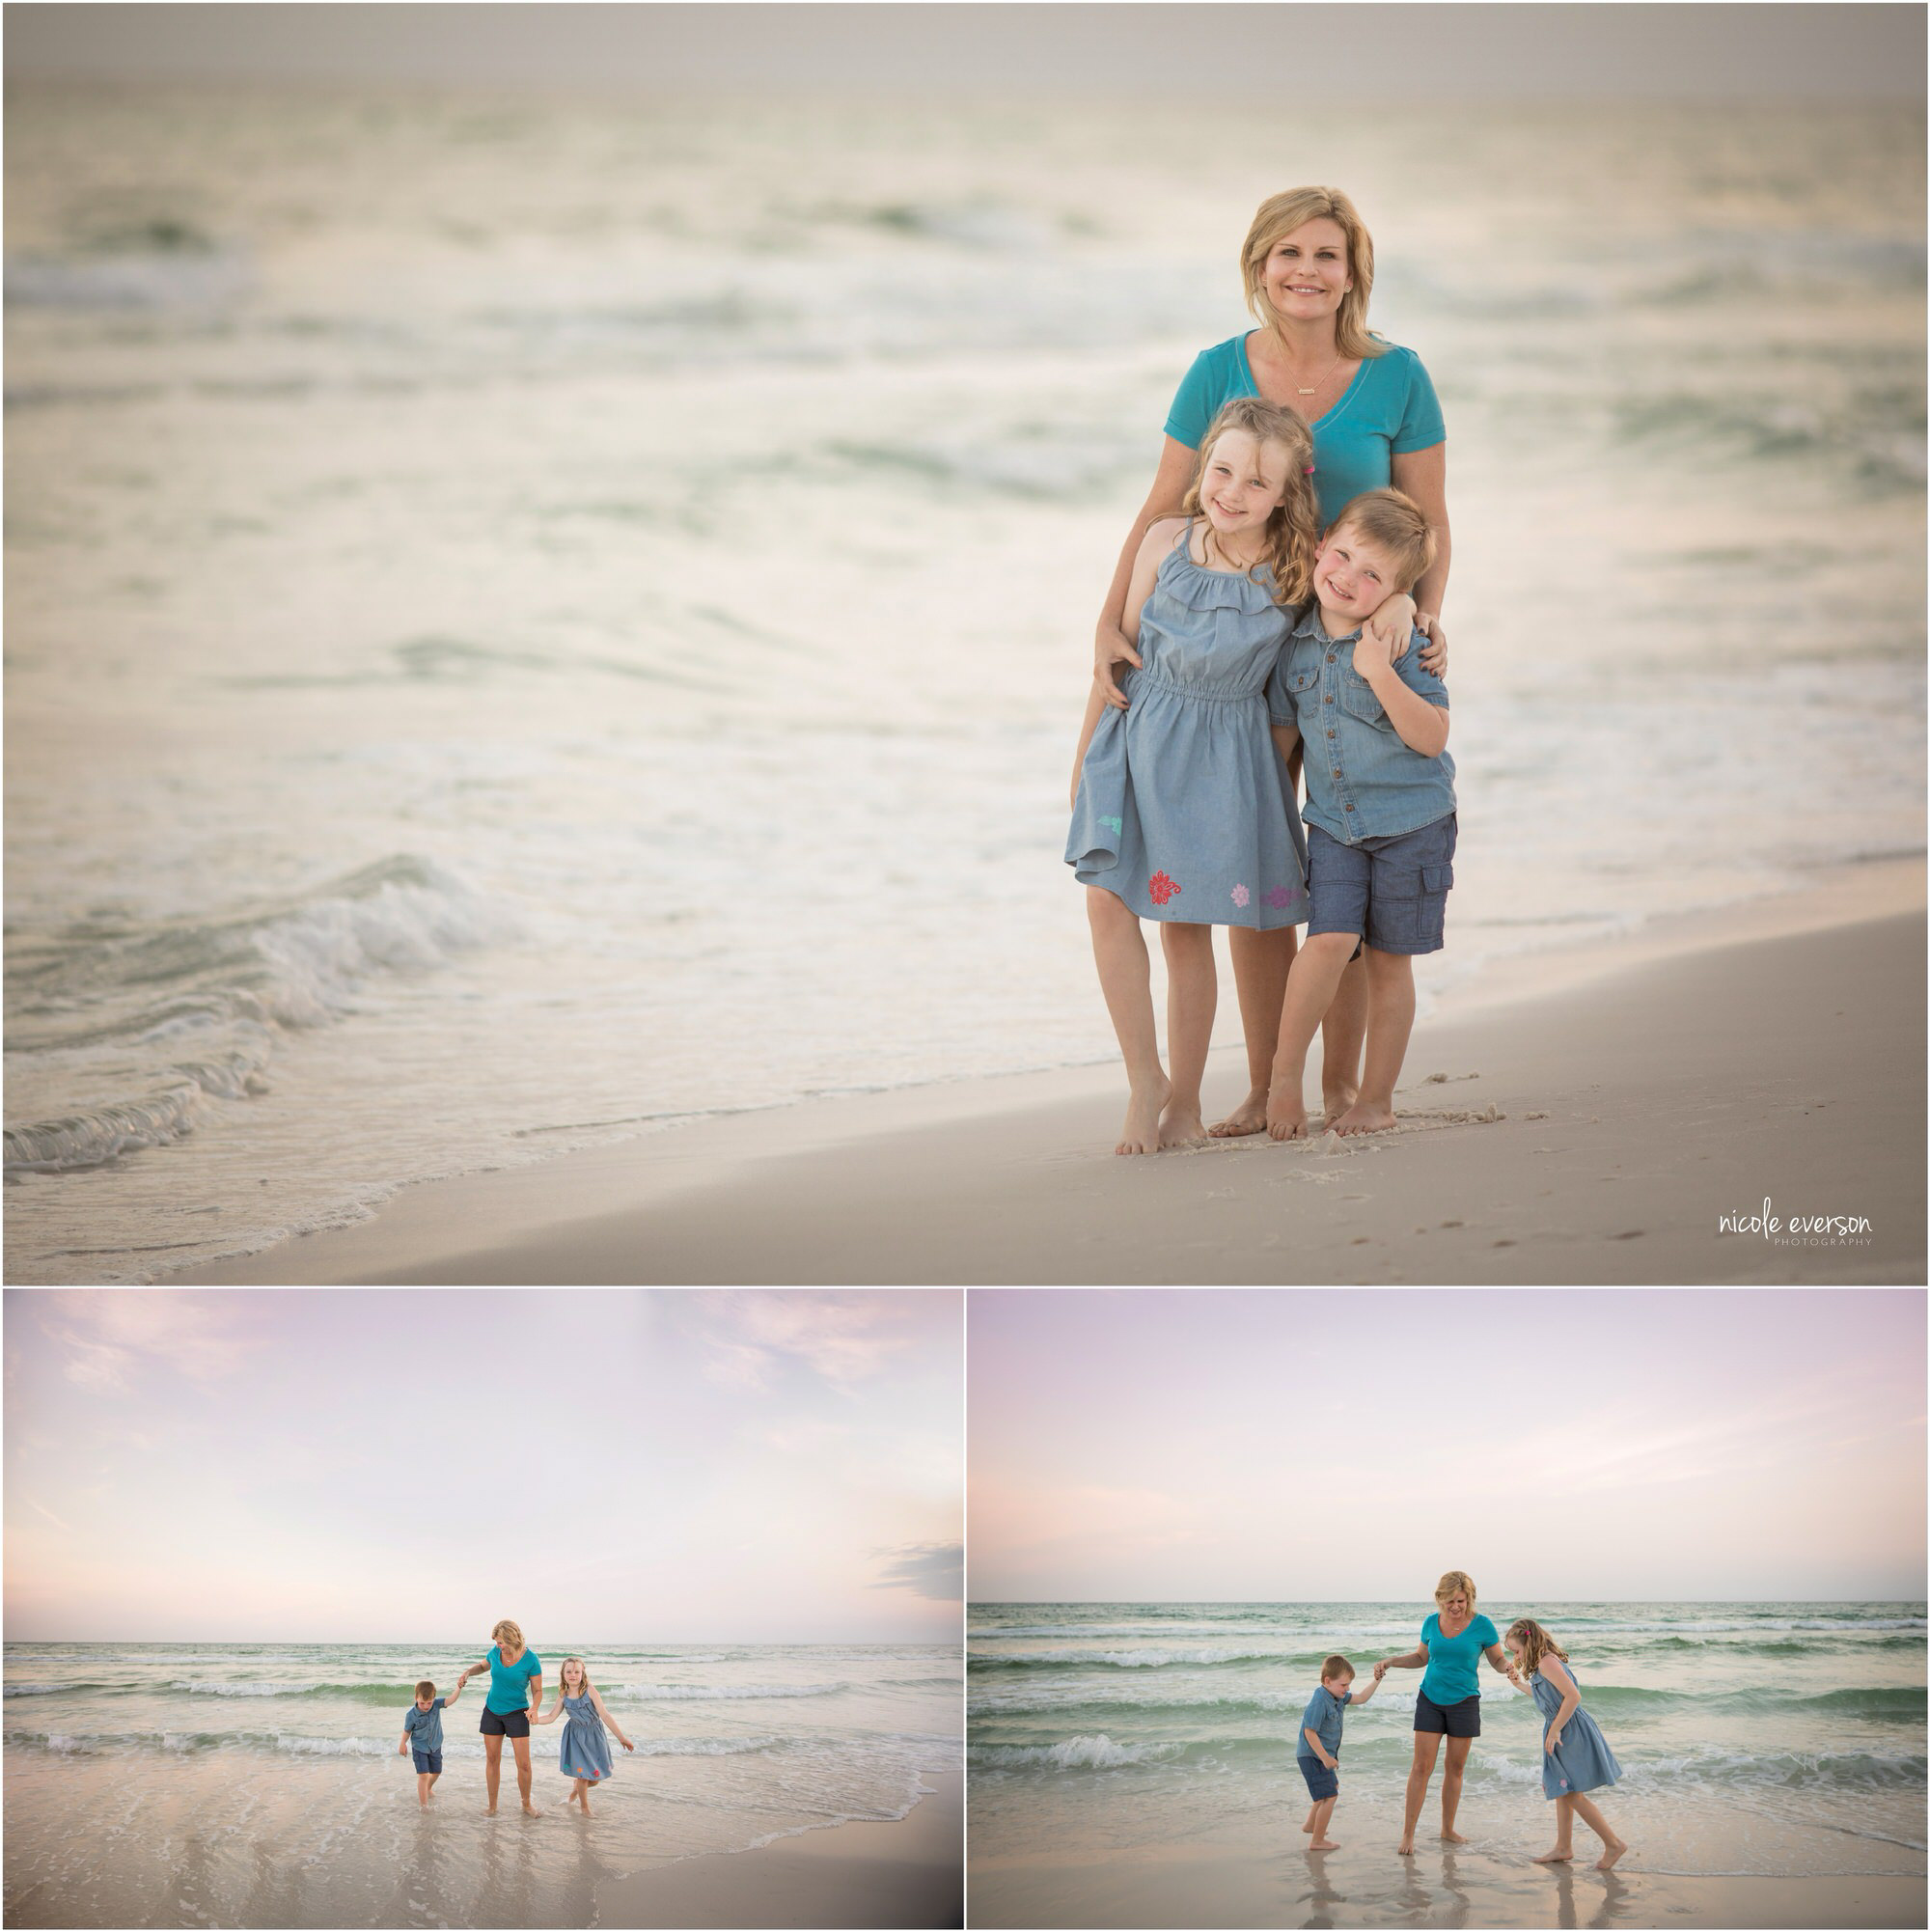 destin family photographer Nicole Everson Photography